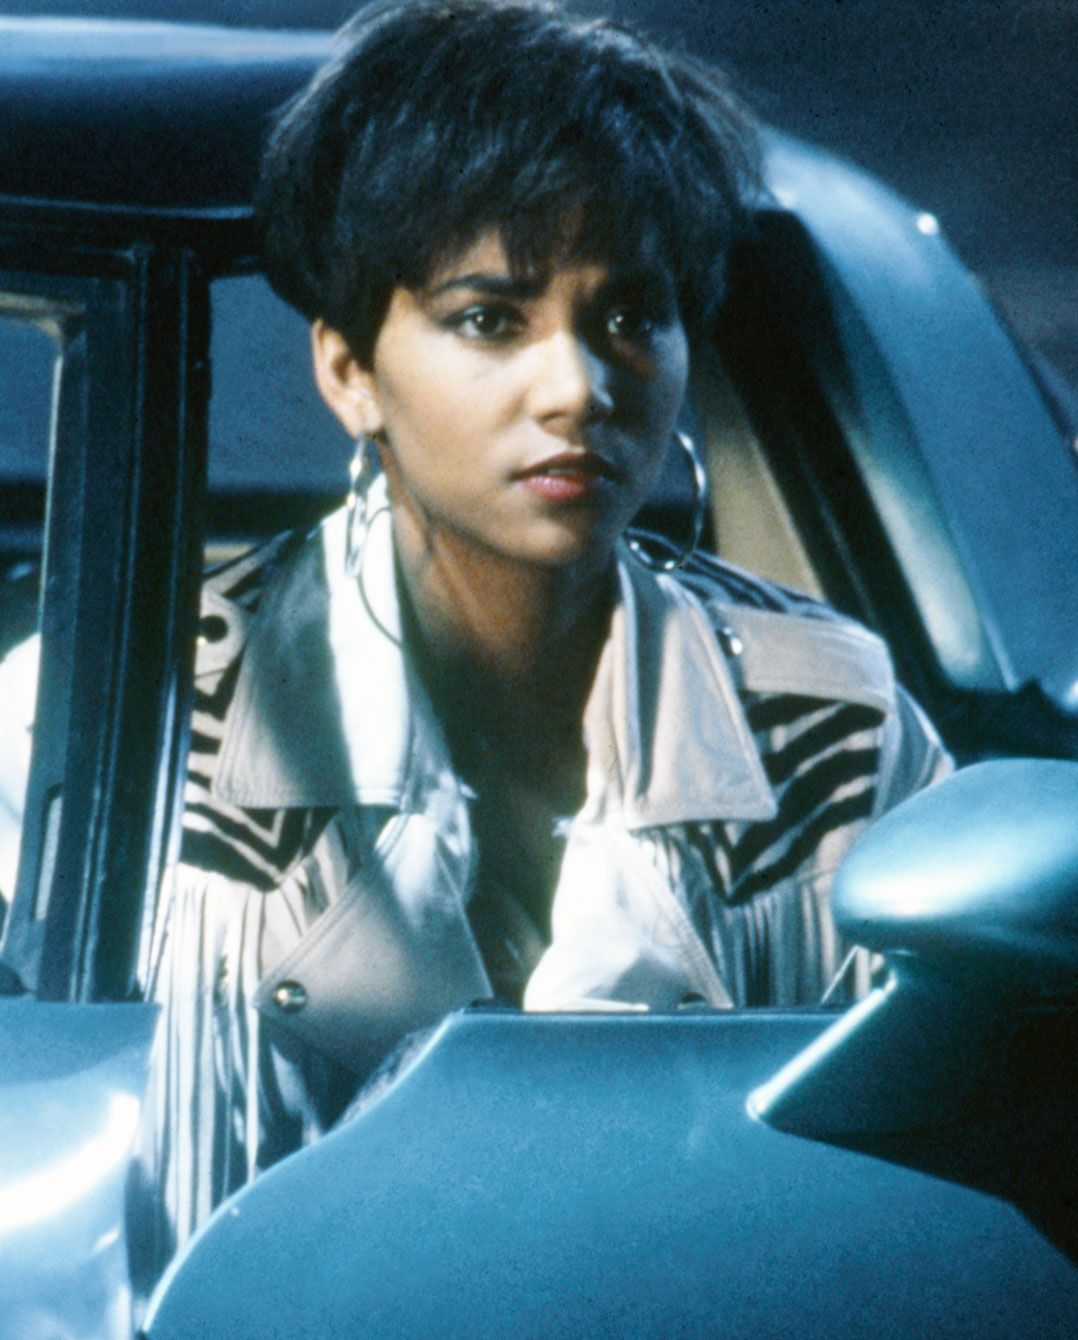 Fringe, Fringe, Fringe No one can pull off a fringed leather jacket and huge hoop earrings like Halle. It's an outfit she donned in the 1991 film The Last Boy Scout , in which she acted alongside Bruce Willis and Damon Wayans.